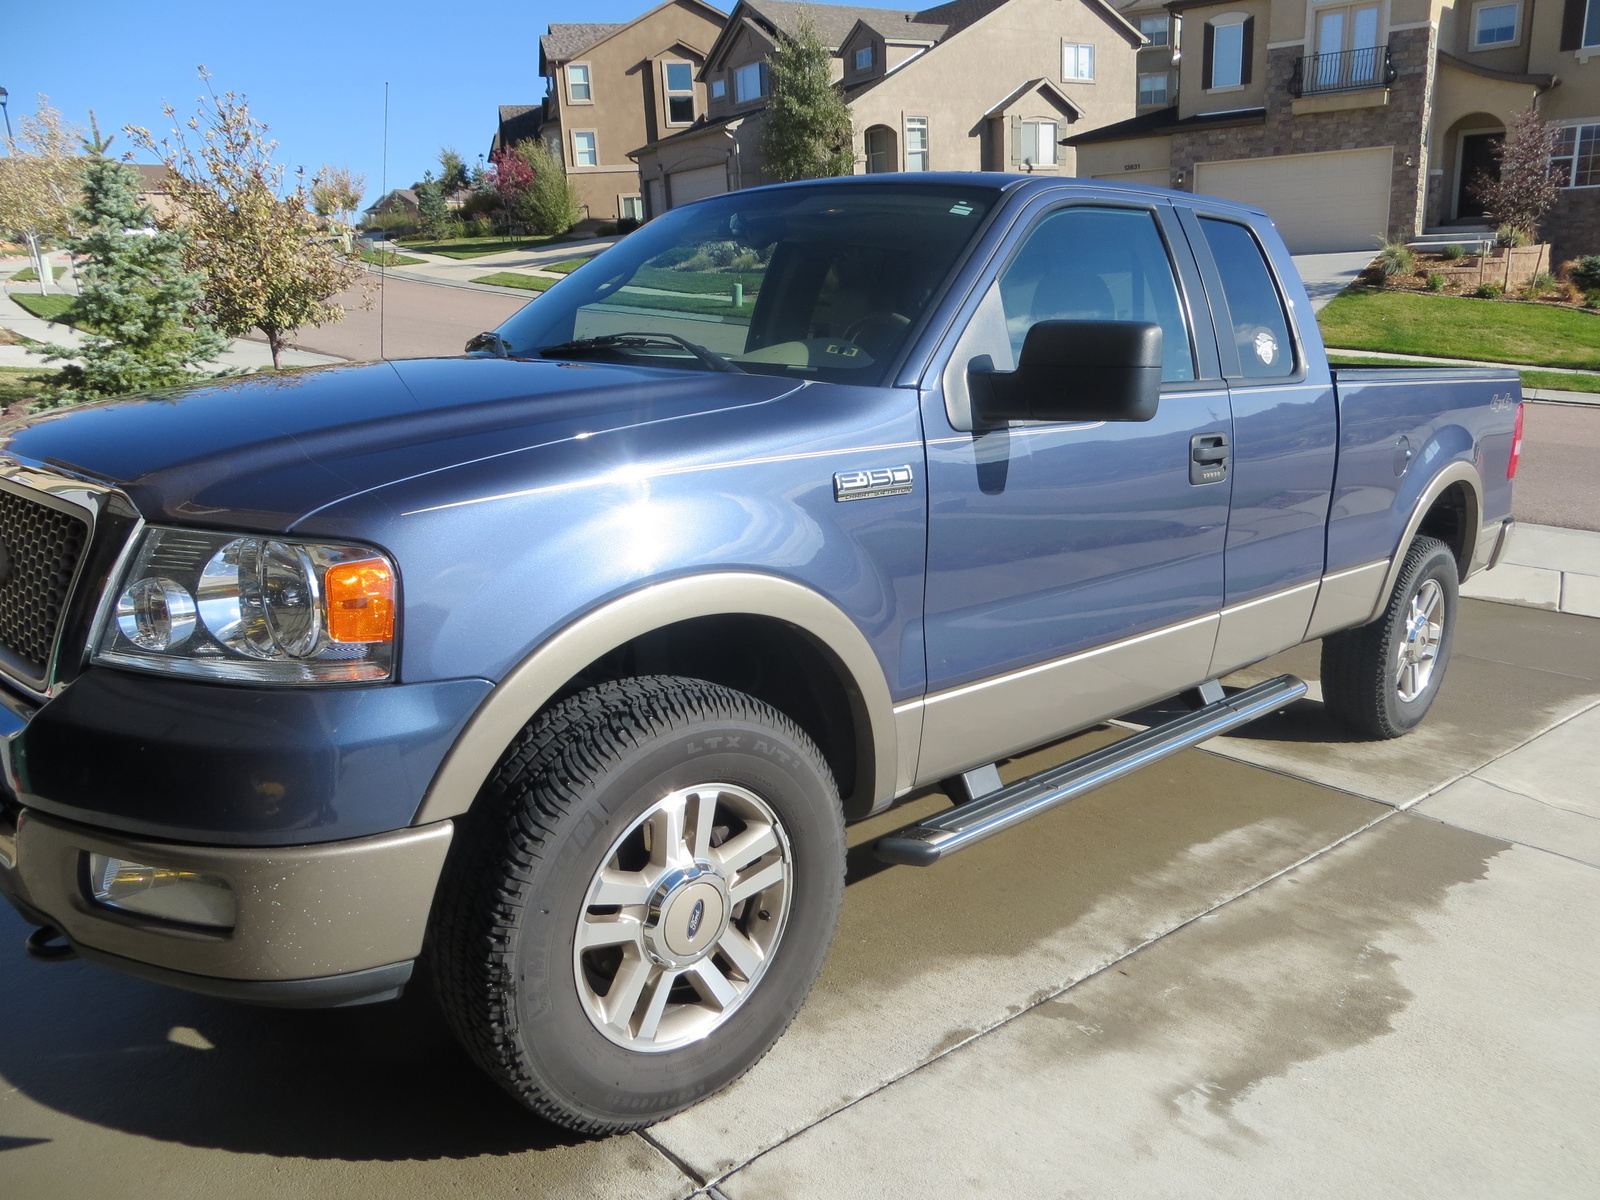 1989 Ford F150 Xl Supercab Reviews >> 2005 Ford F-150 - Pictures - CarGurus